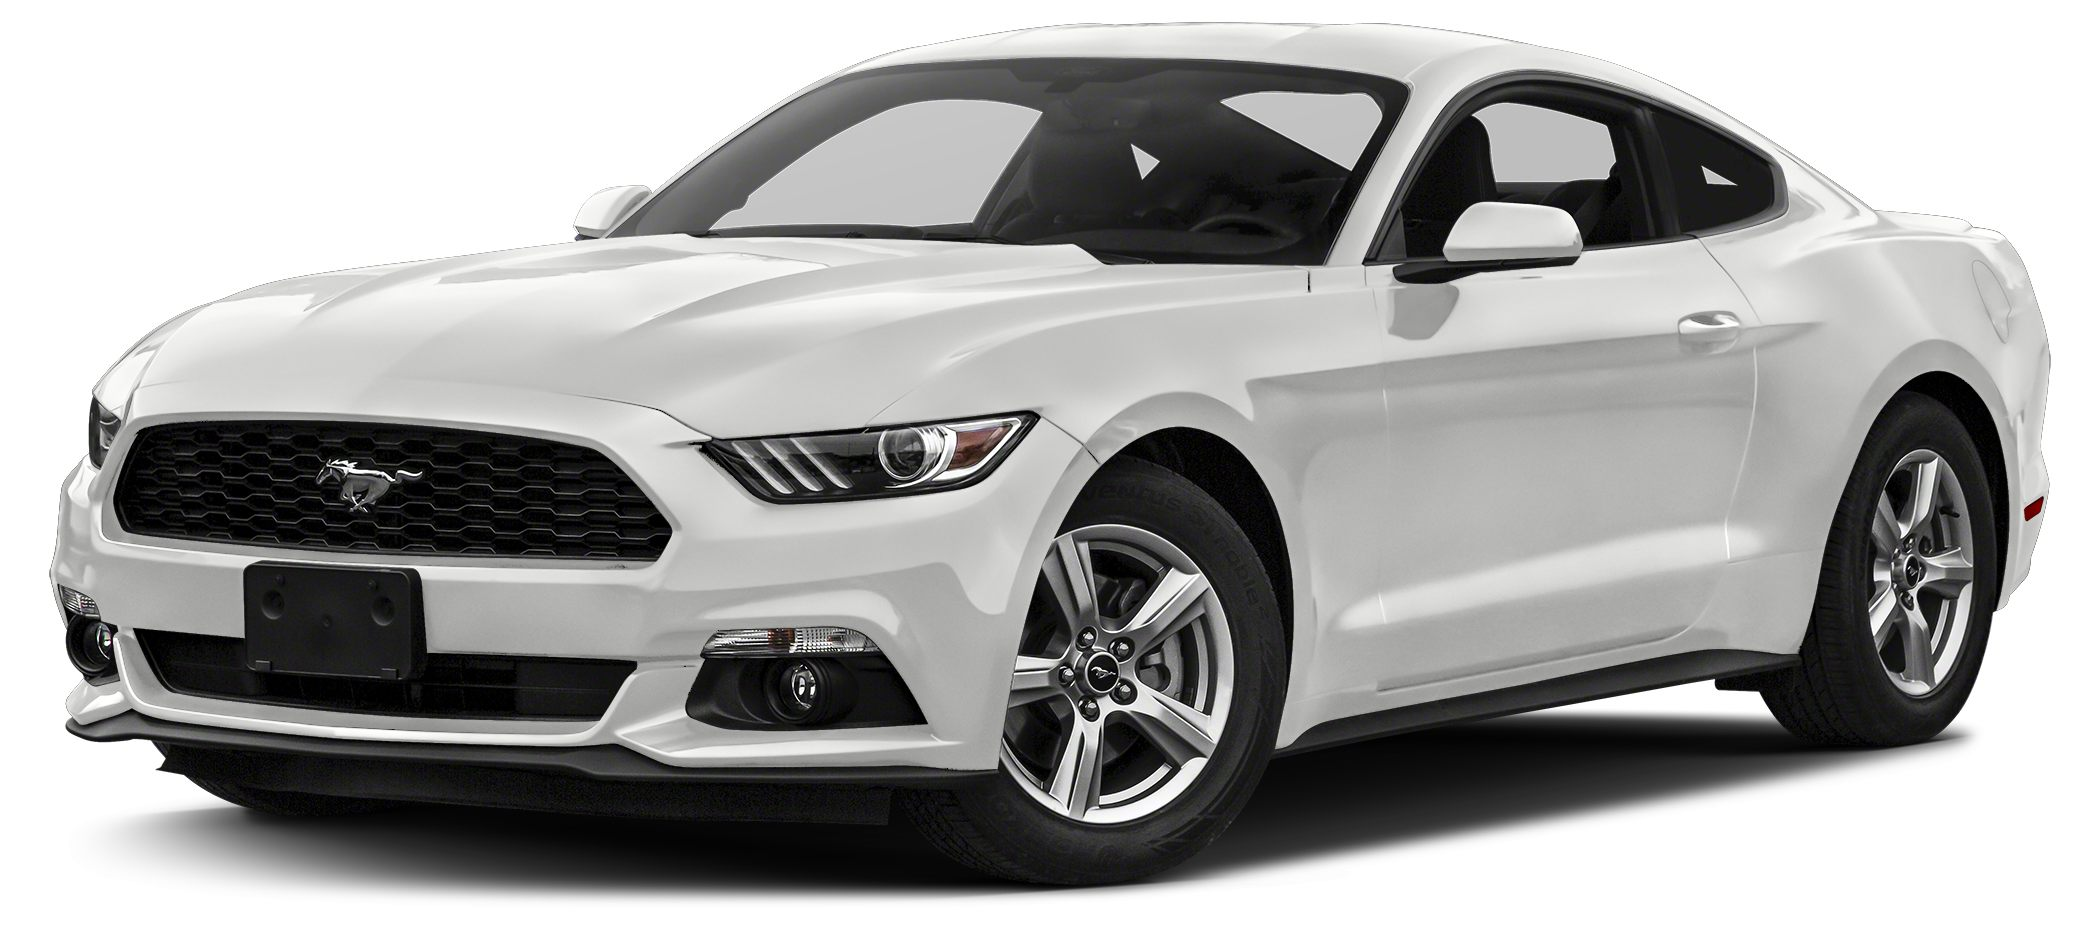 2017 Ford Mustang EcoBoost The Ford Mustang is an American classic that lives on The body has bee